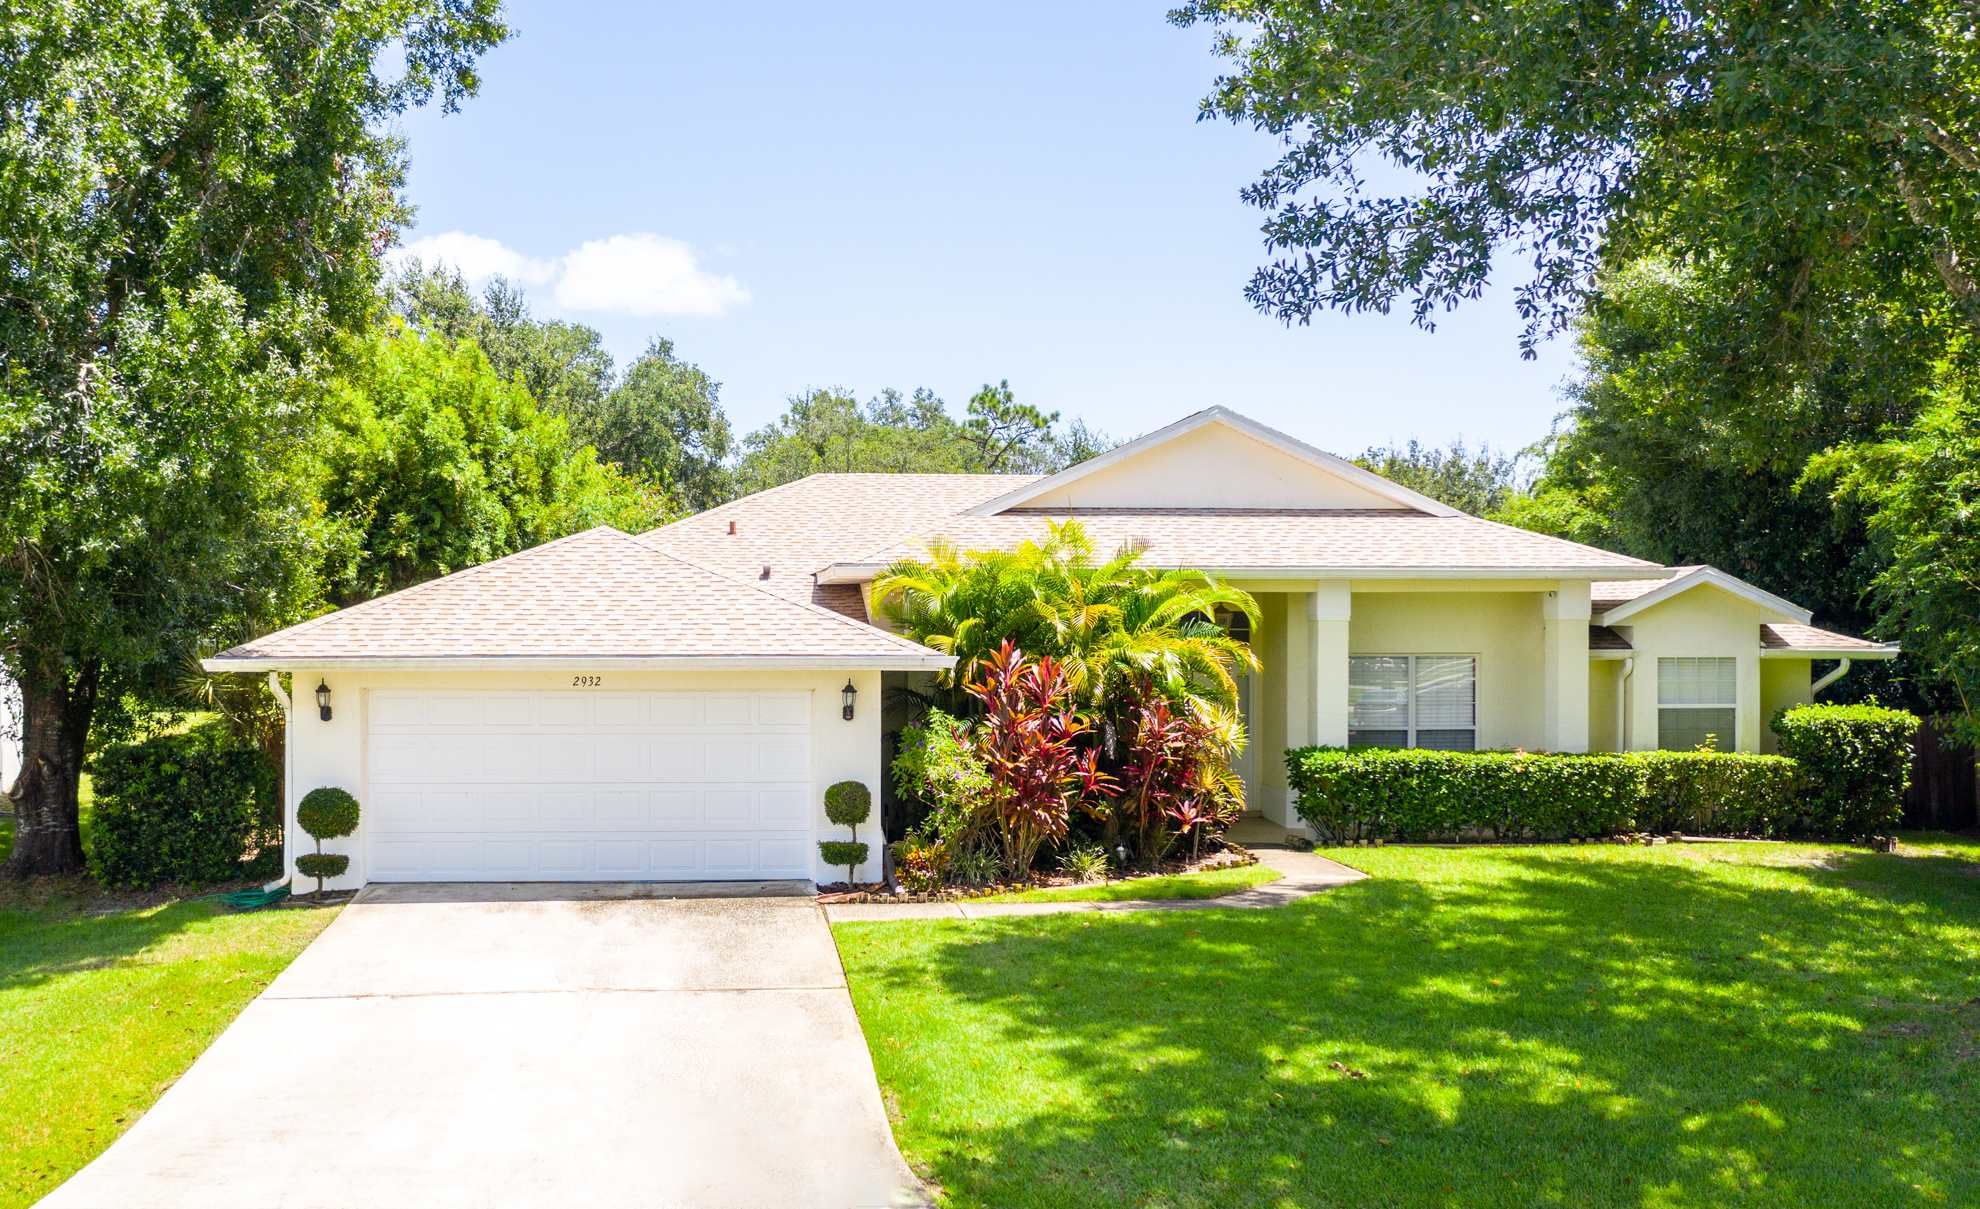 Home for sale in Kissimmee Florida 2932 Evans Dr. Rockrose Realty